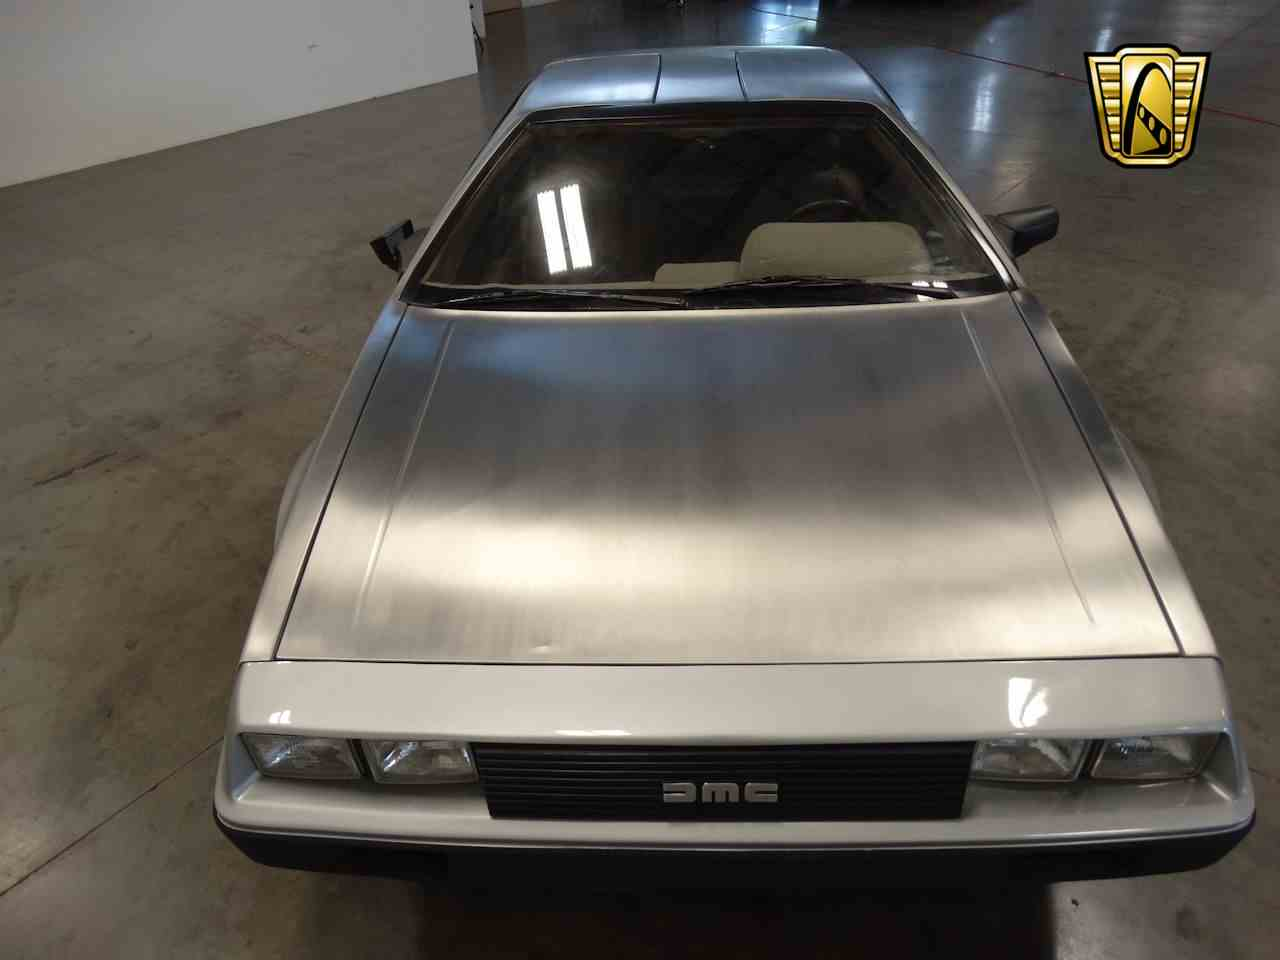 Large Picture of '81 DeLorean DMC-12 located in Tennessee - $29,995.00 - M2L4